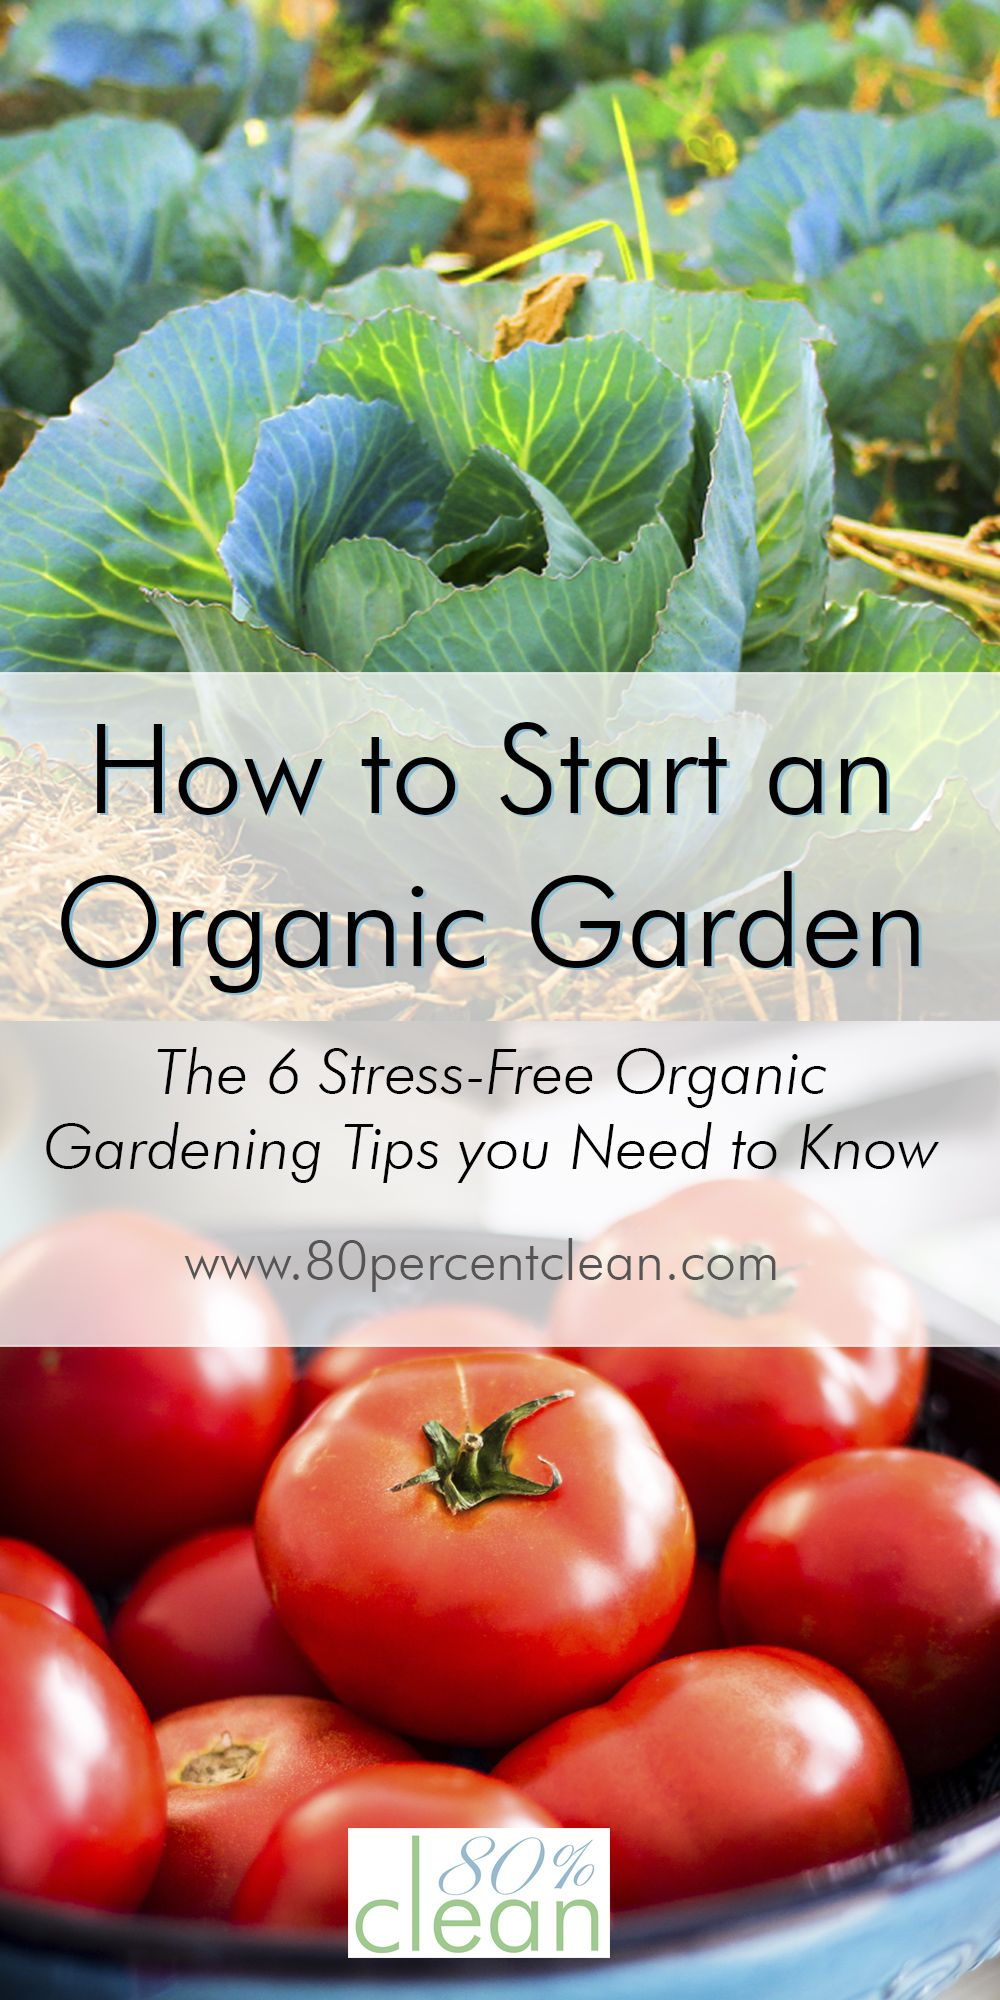 Want to grow your own organic vegetables, but don't know where to begin? Want a stress-free way? Learn how to start an organic garden easily here.